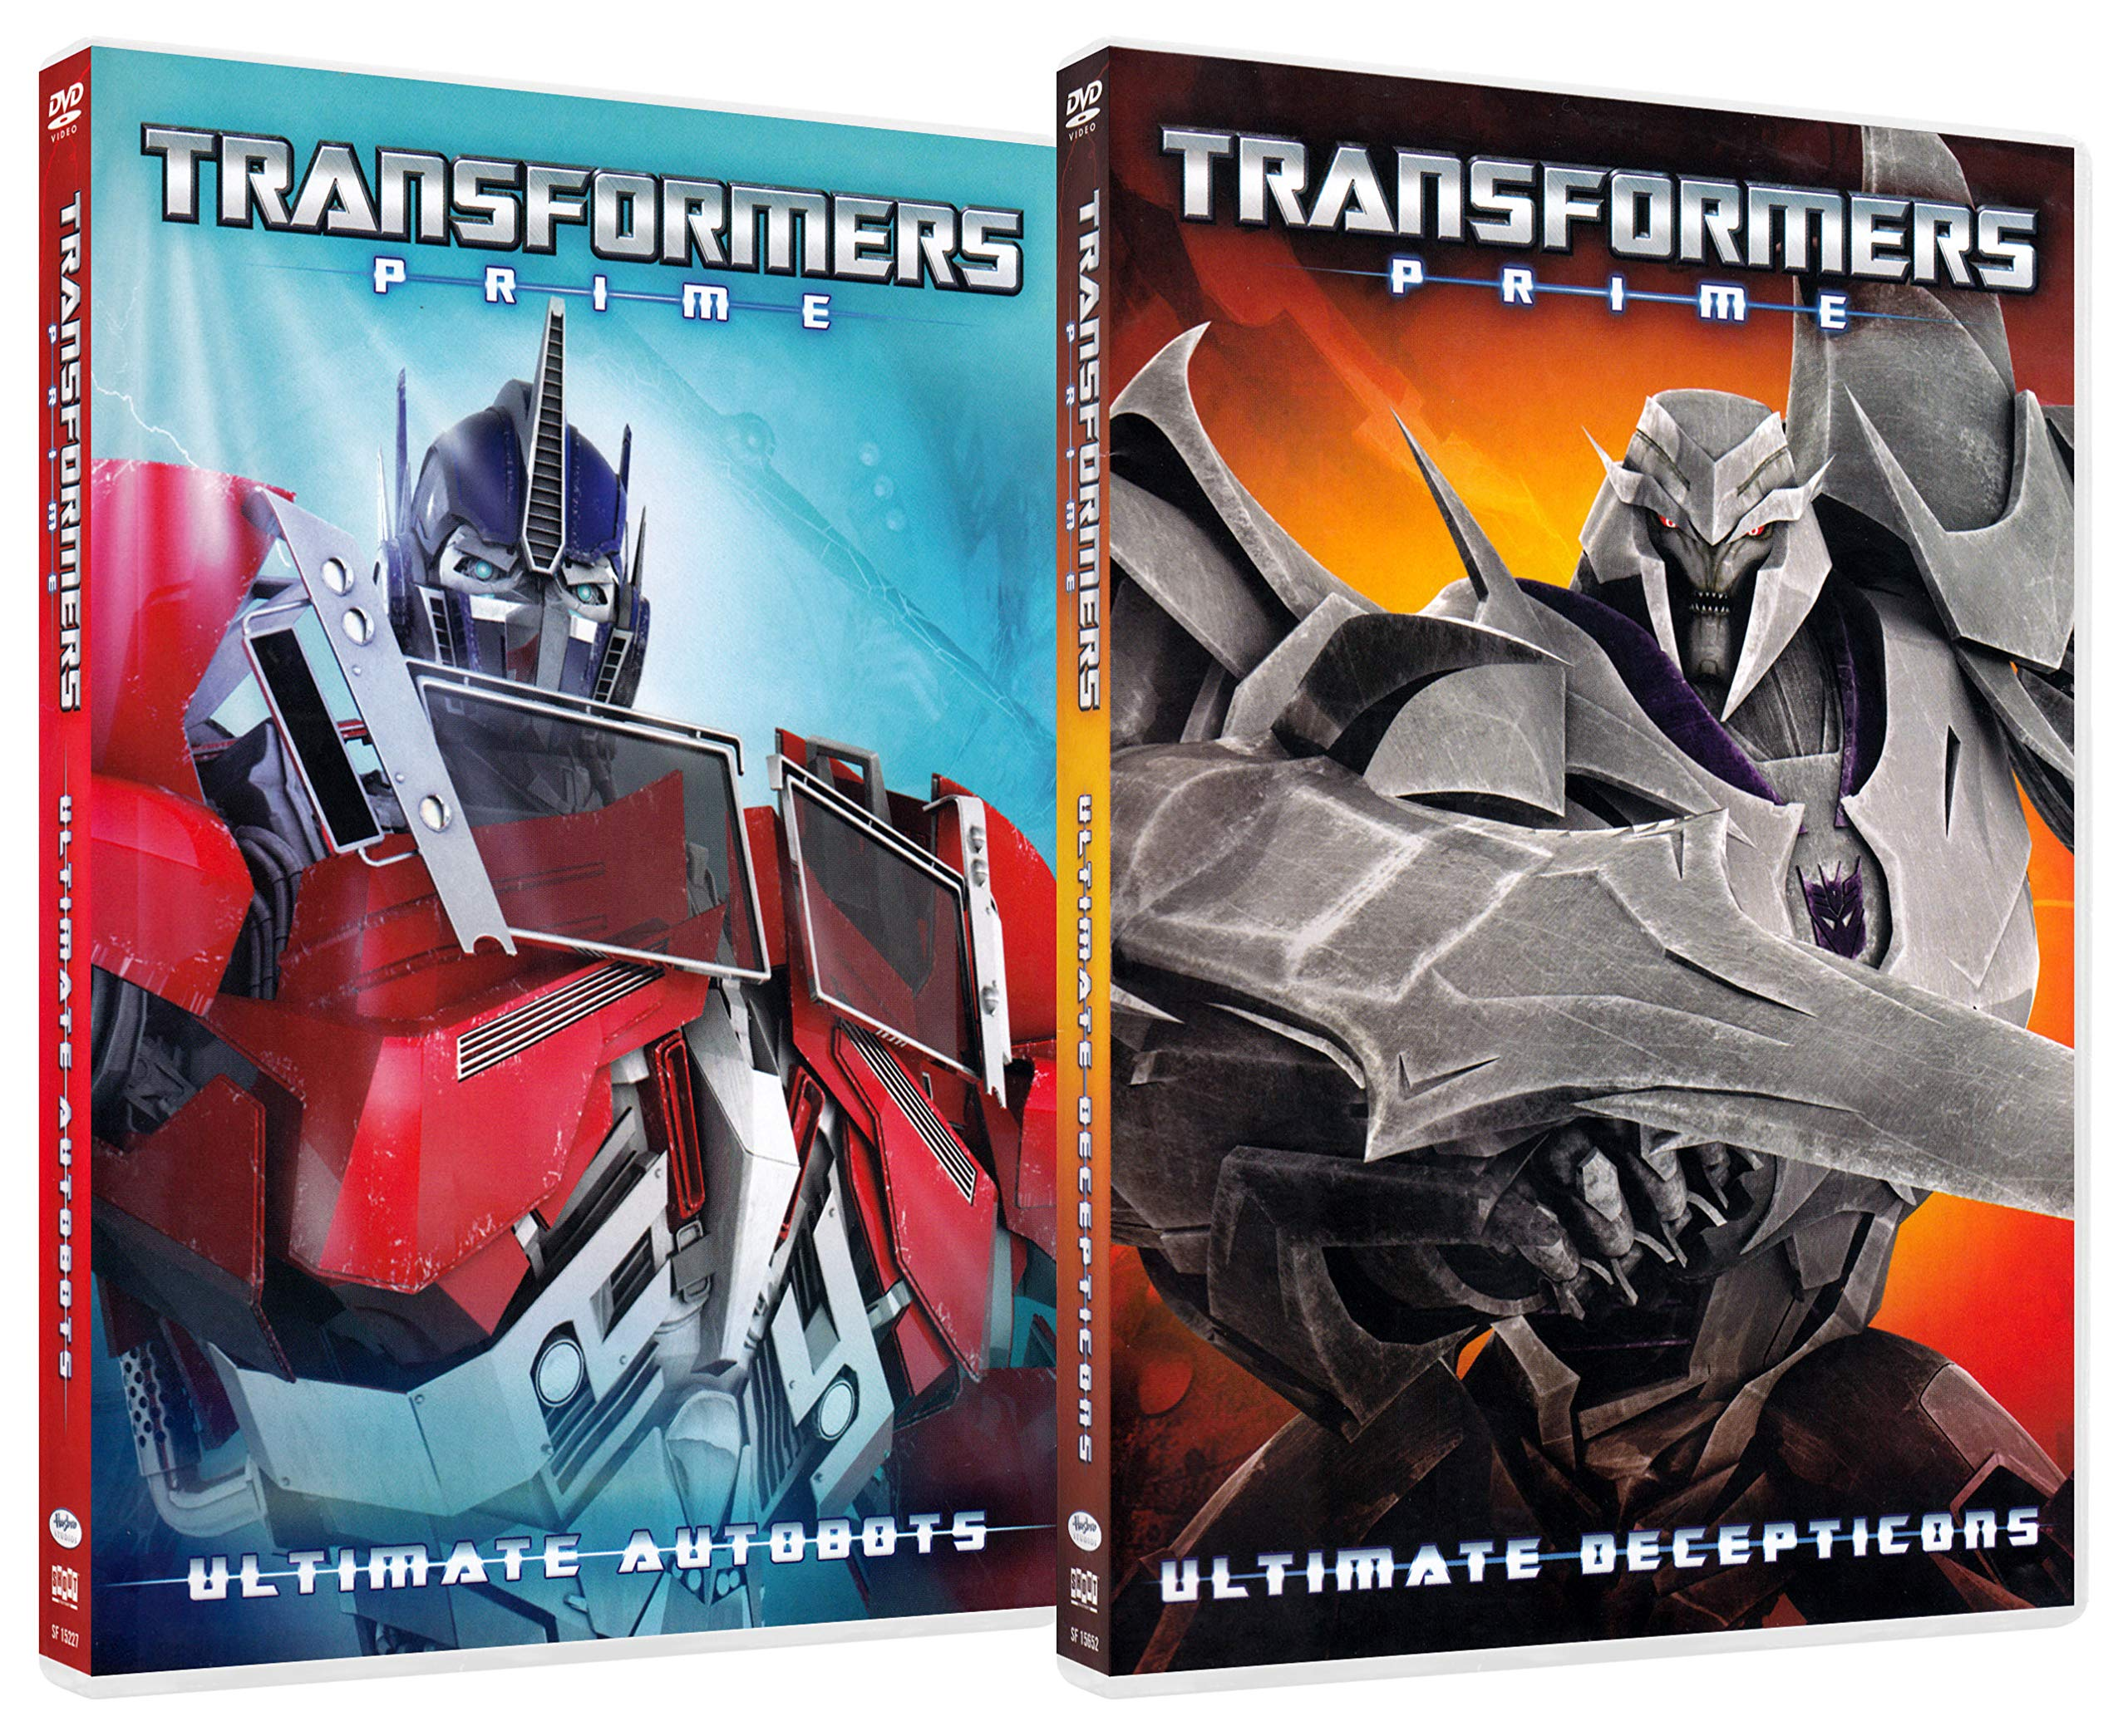 Transformers: Prime (Ultimate Decepticons / Ultimate Autobots) (2-Pack)